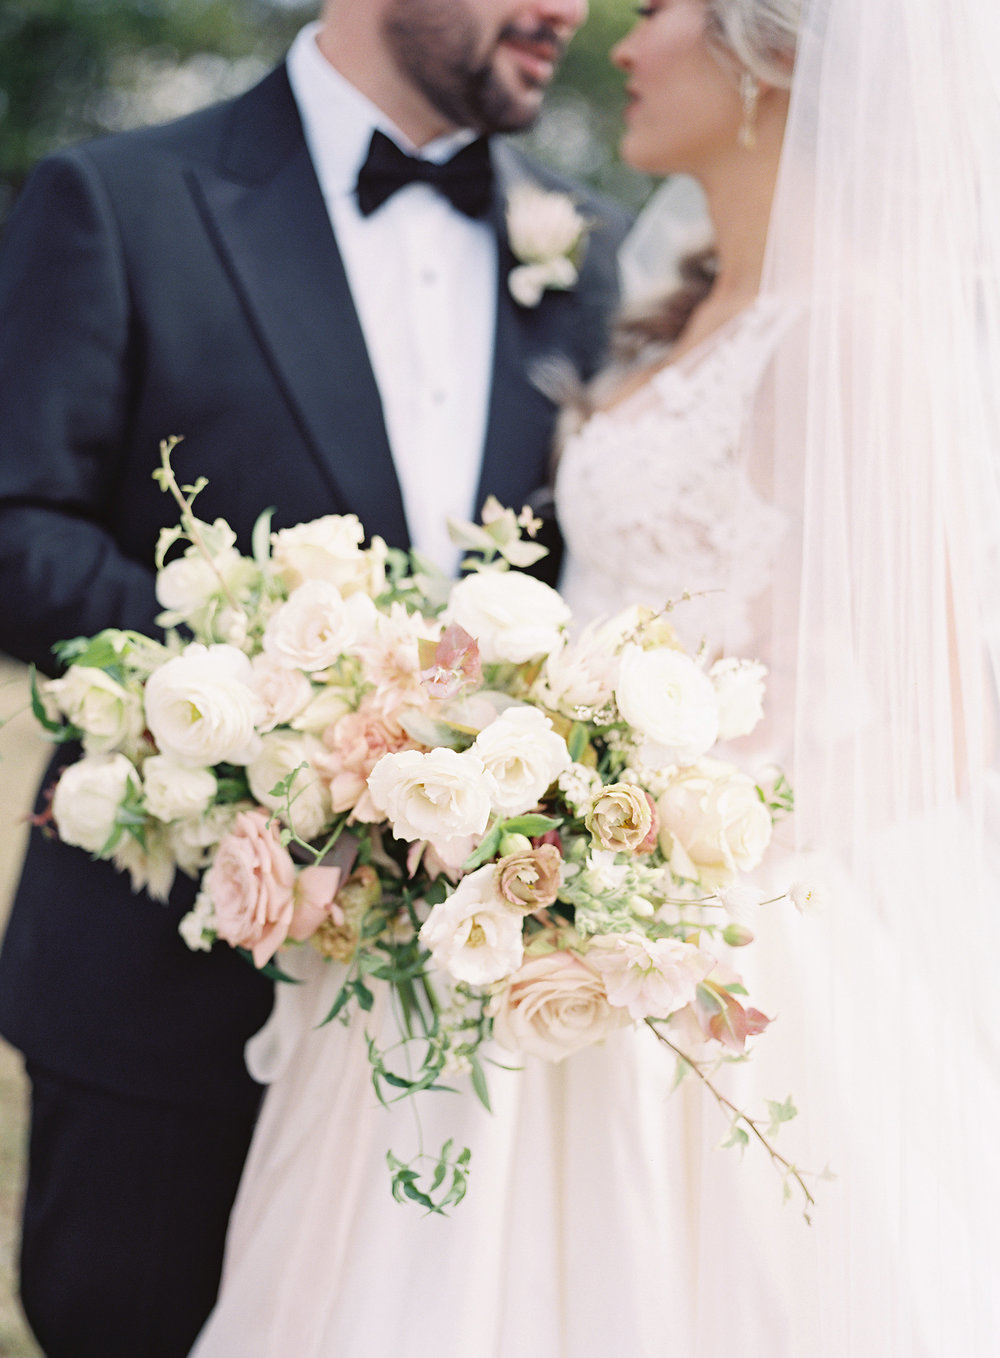 jessica-zimmerman-events-heather-payne-dan-and-shay-wedding-bouquet.jpg